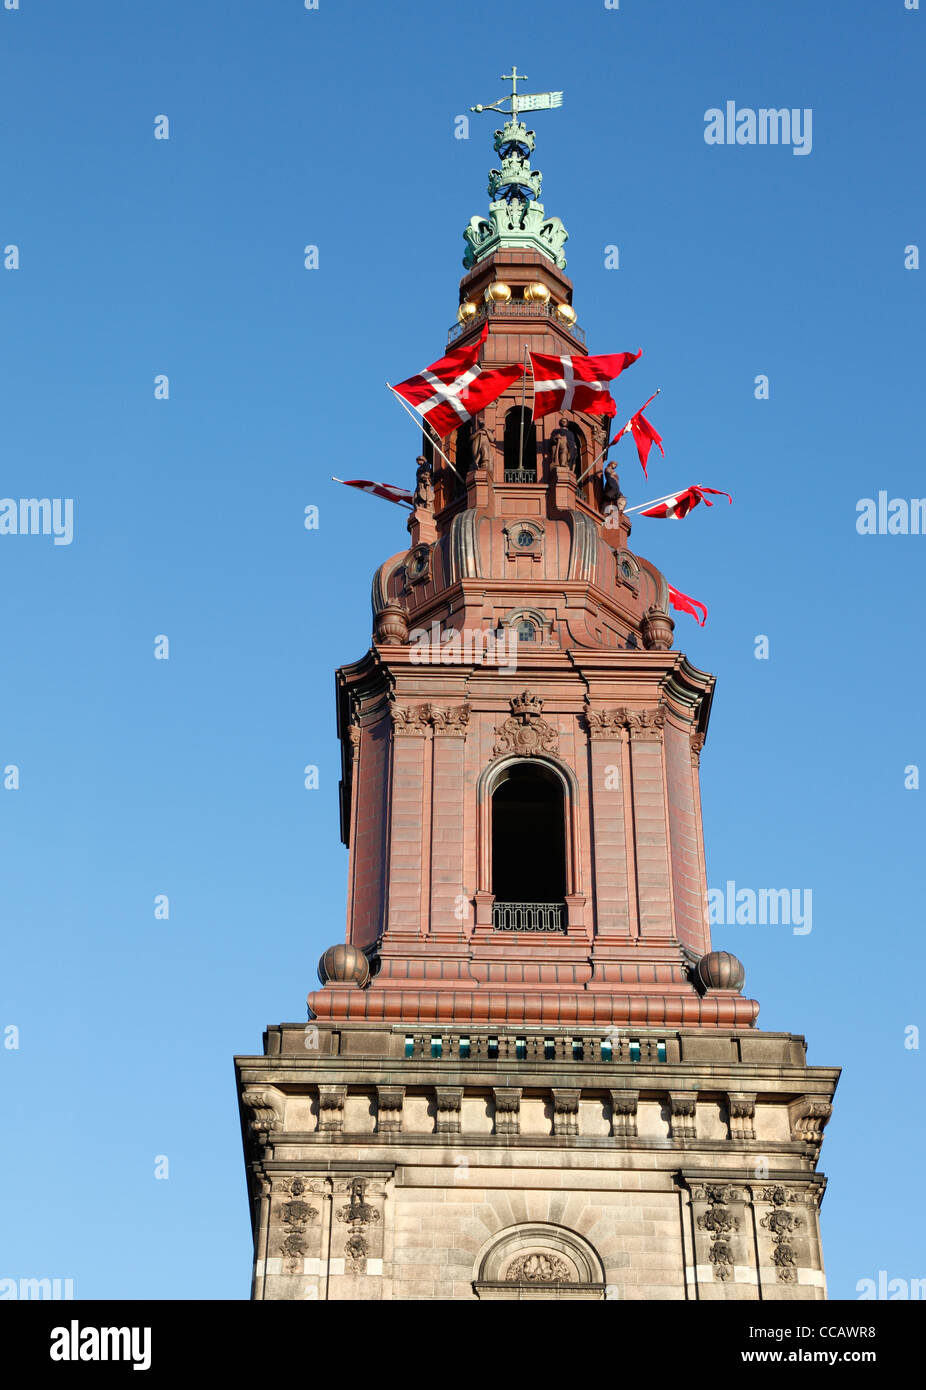 Danish flags in the tower windows of Christiansborg Palace, the parliament building in Copenhagen, Denmark, in celebration. Stock Photo